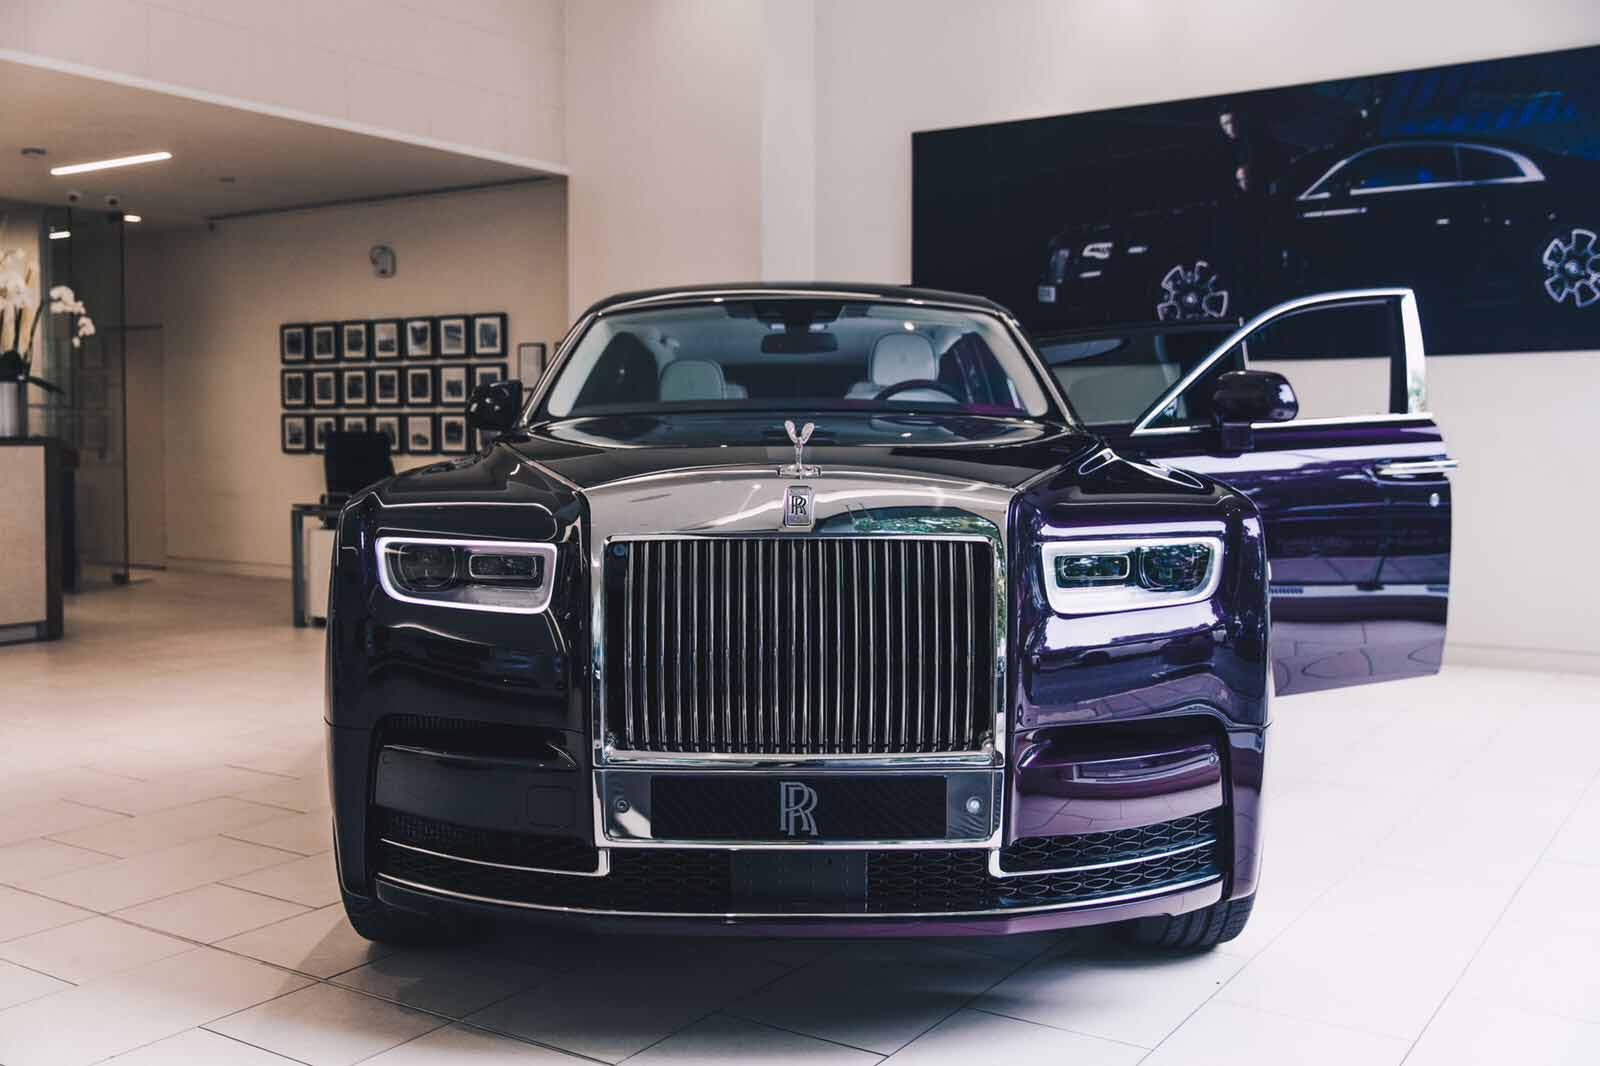 This 2018 Rolls Royce Phantom Is Purple On Purple